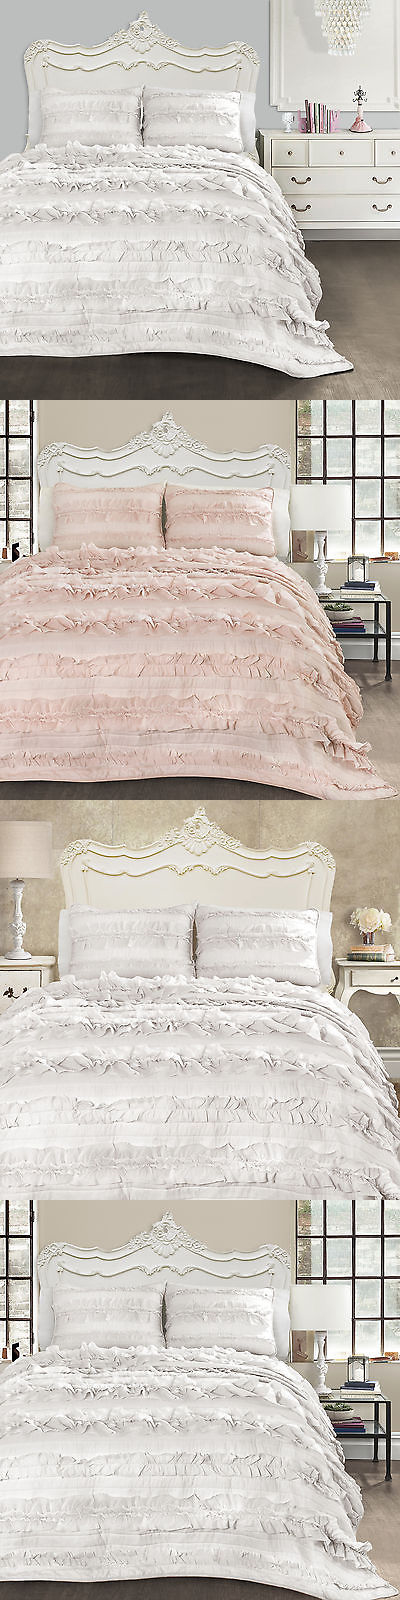 Lush Decor Belle Bedding Quilts Bedspreads And Coverlets 175749 Lush Decor Belle 3Piece